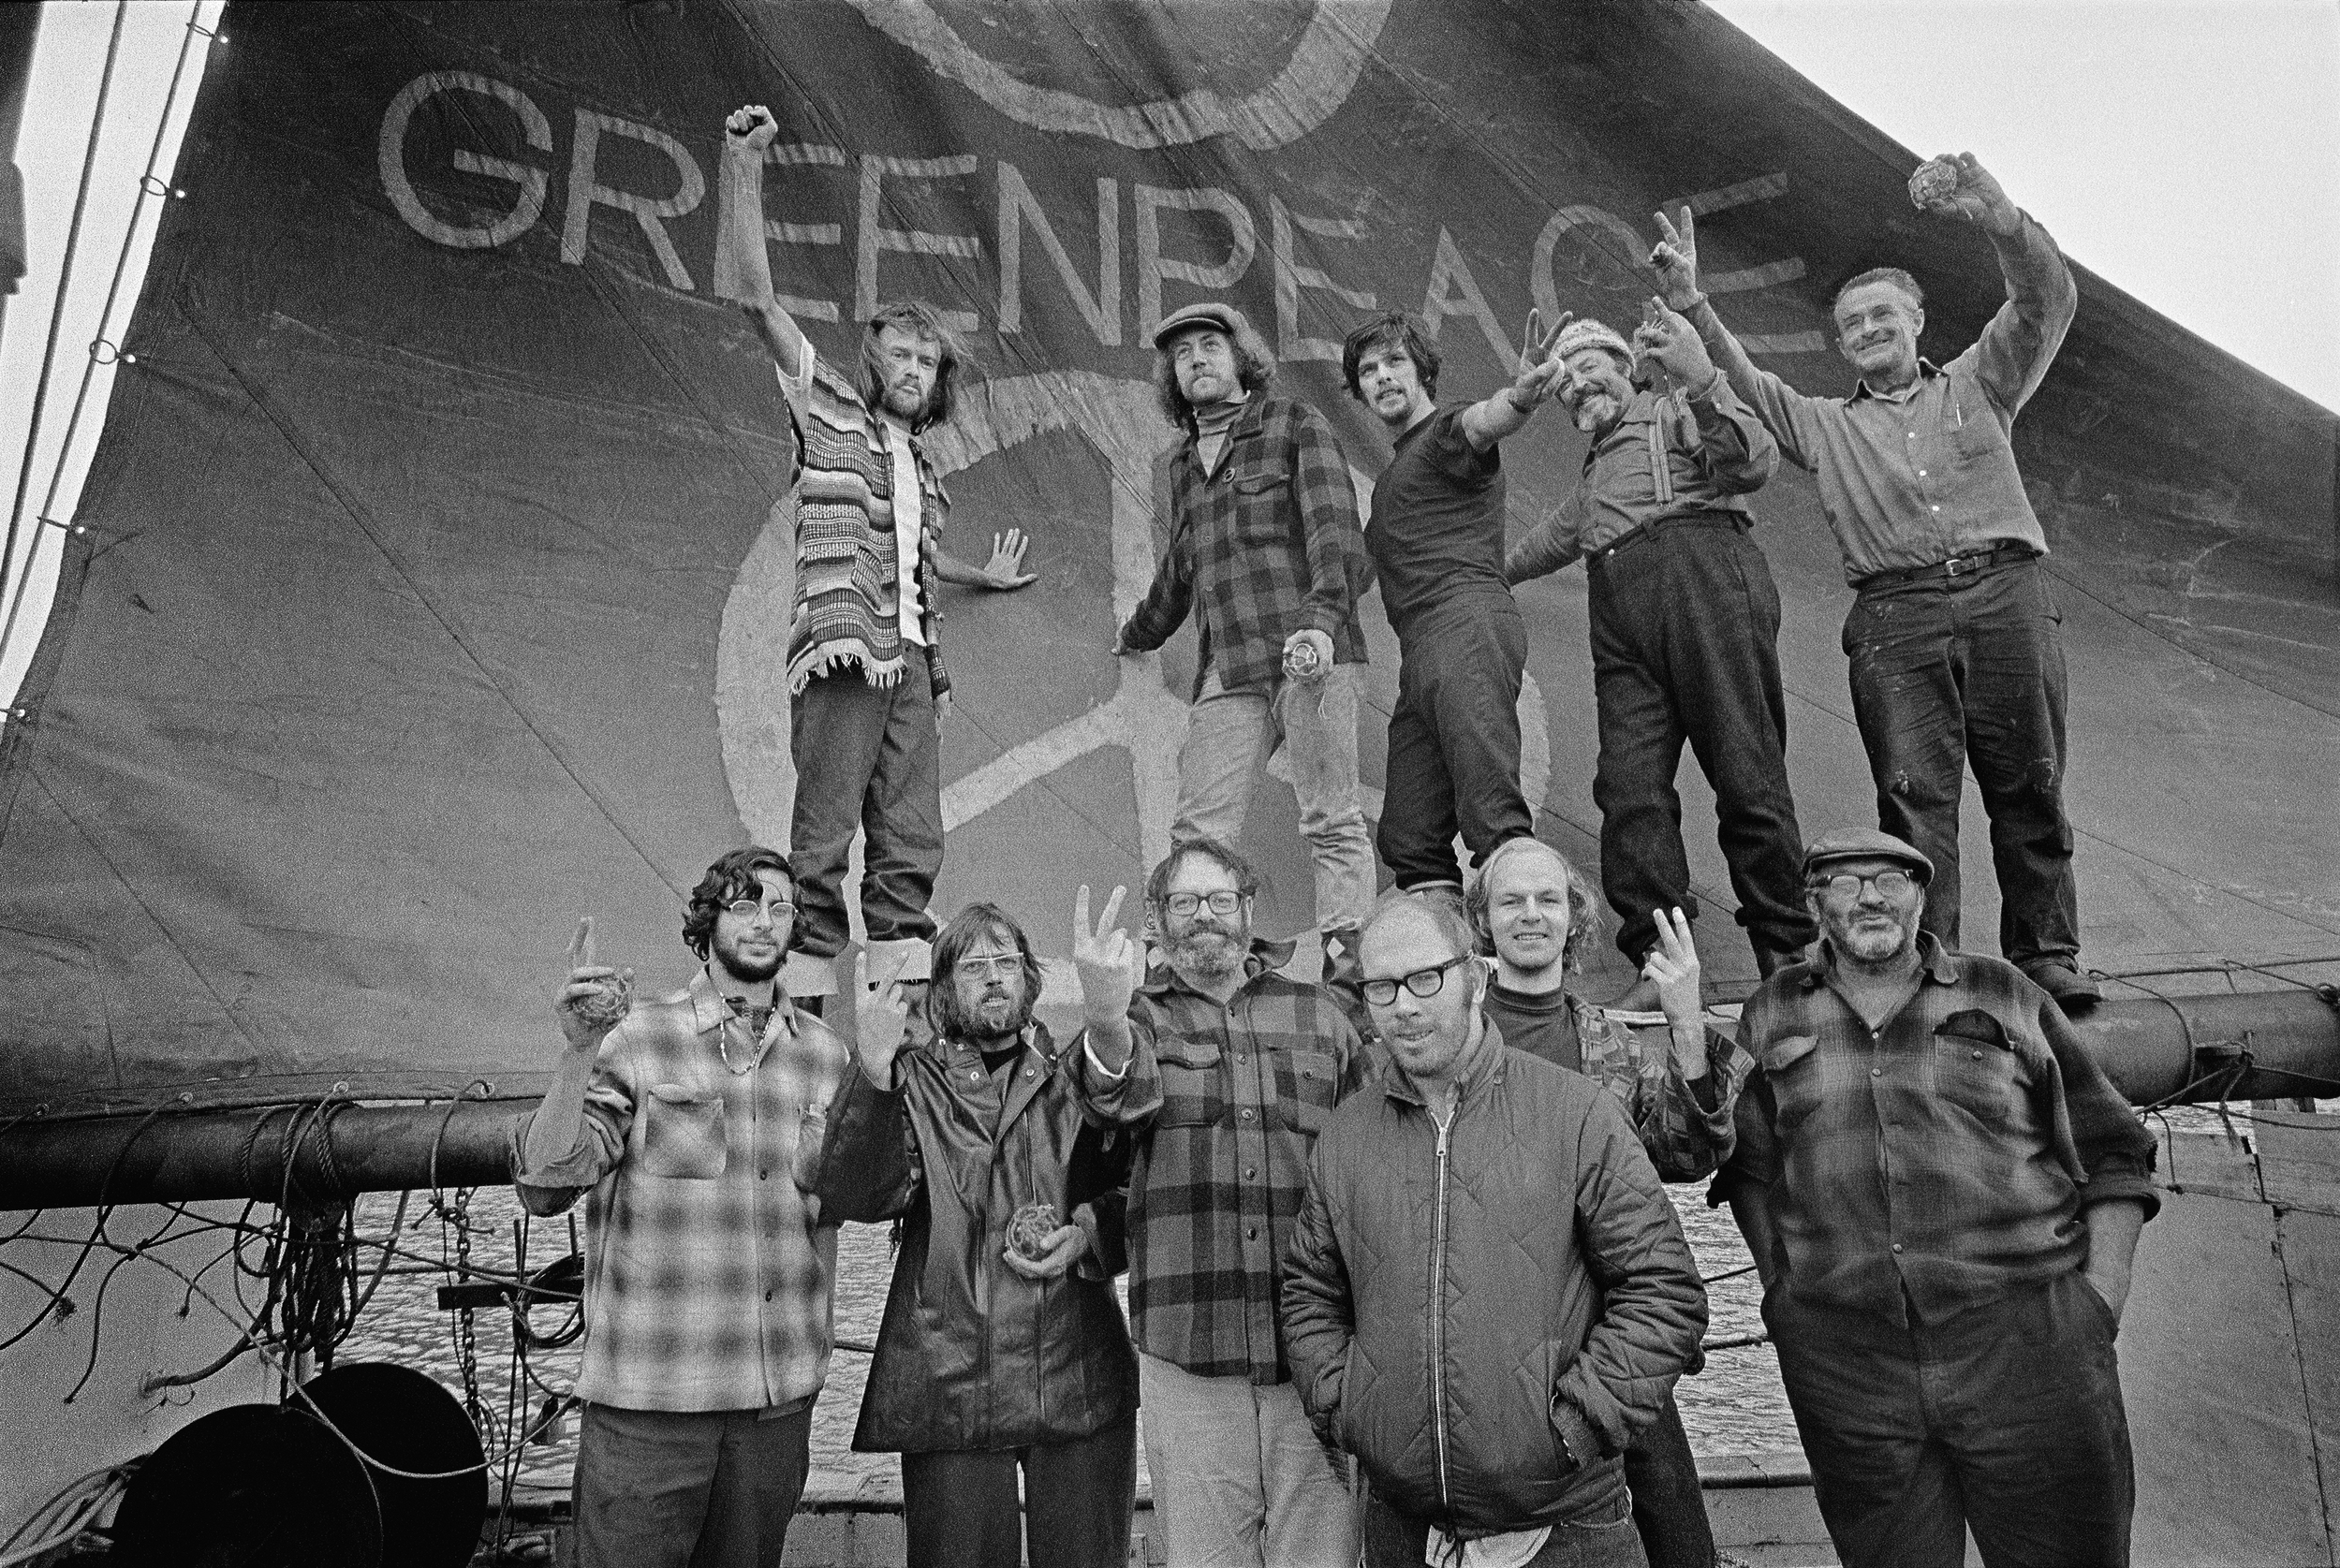 Black and white photo in which 11 people pose in front of a ship with a sail reading Greenpeace in the background.